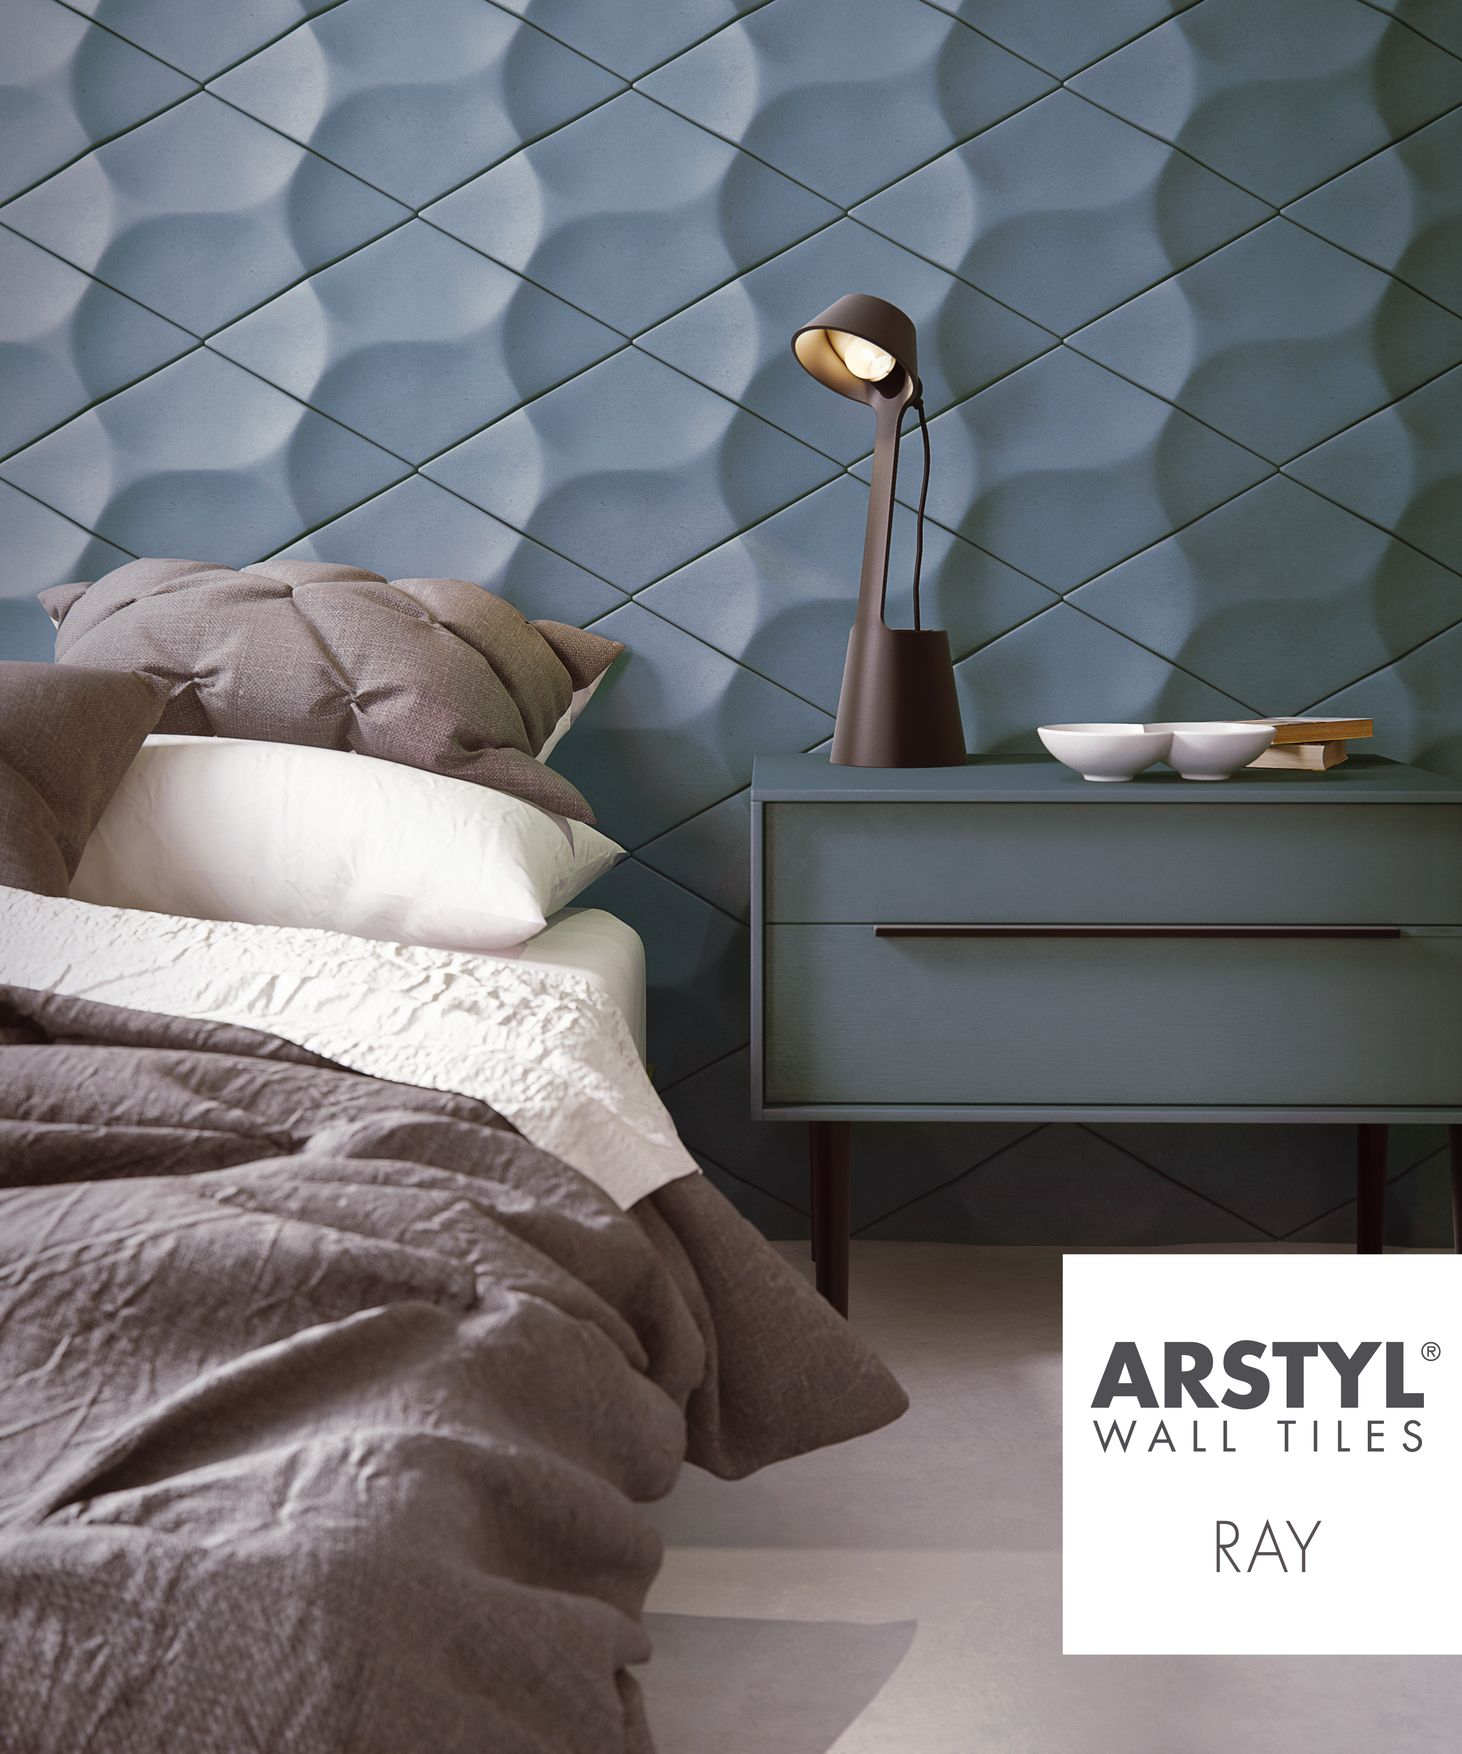 Arstyl Decorative 3d Wall Elements Wall Panels Bedroom Textured